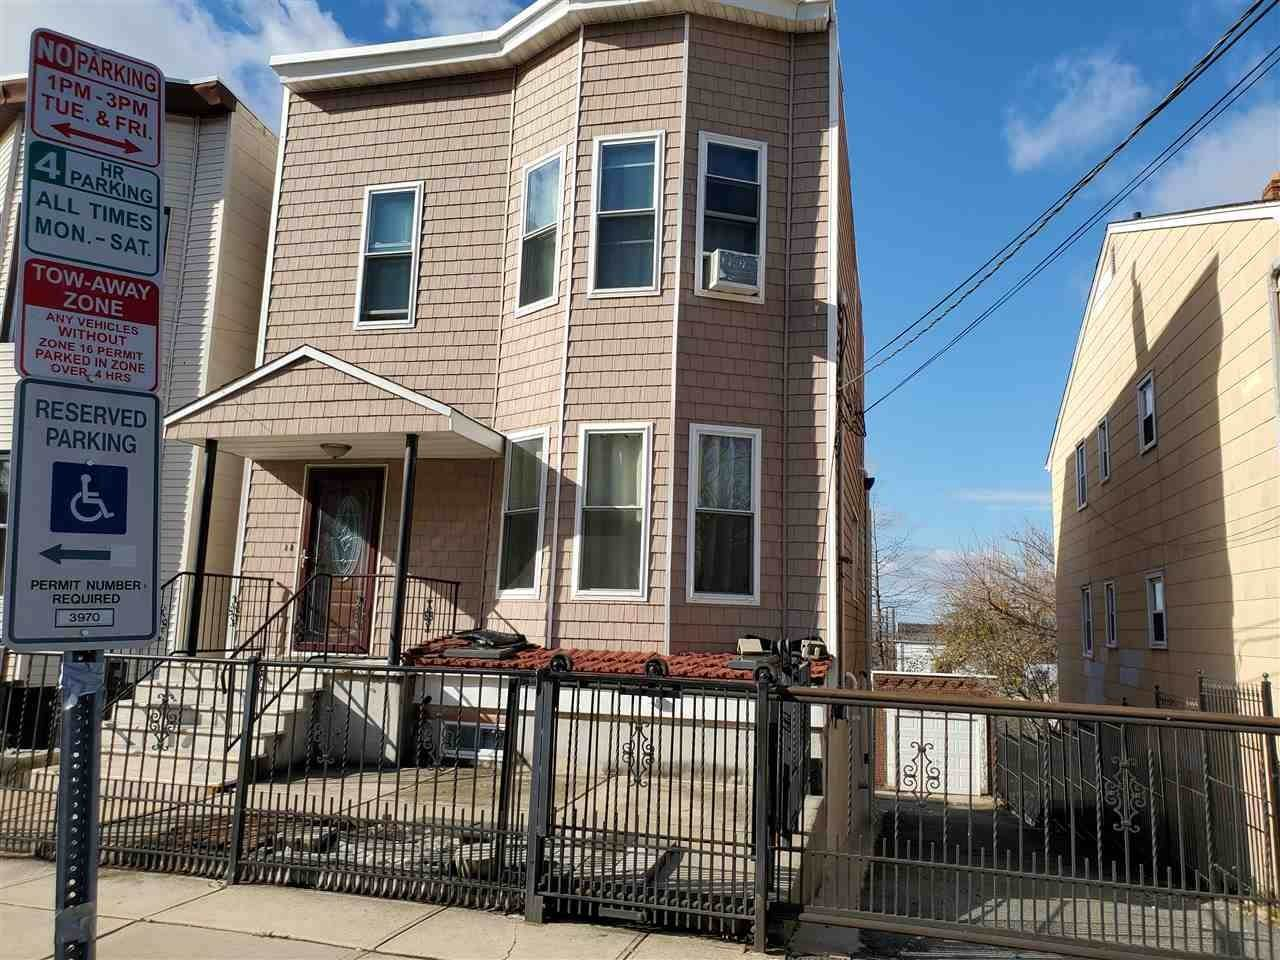 3. Single Family Home for Rent at 27 NELSON AVENUE #APT # Jersey City, New Jersey, 07307 United States